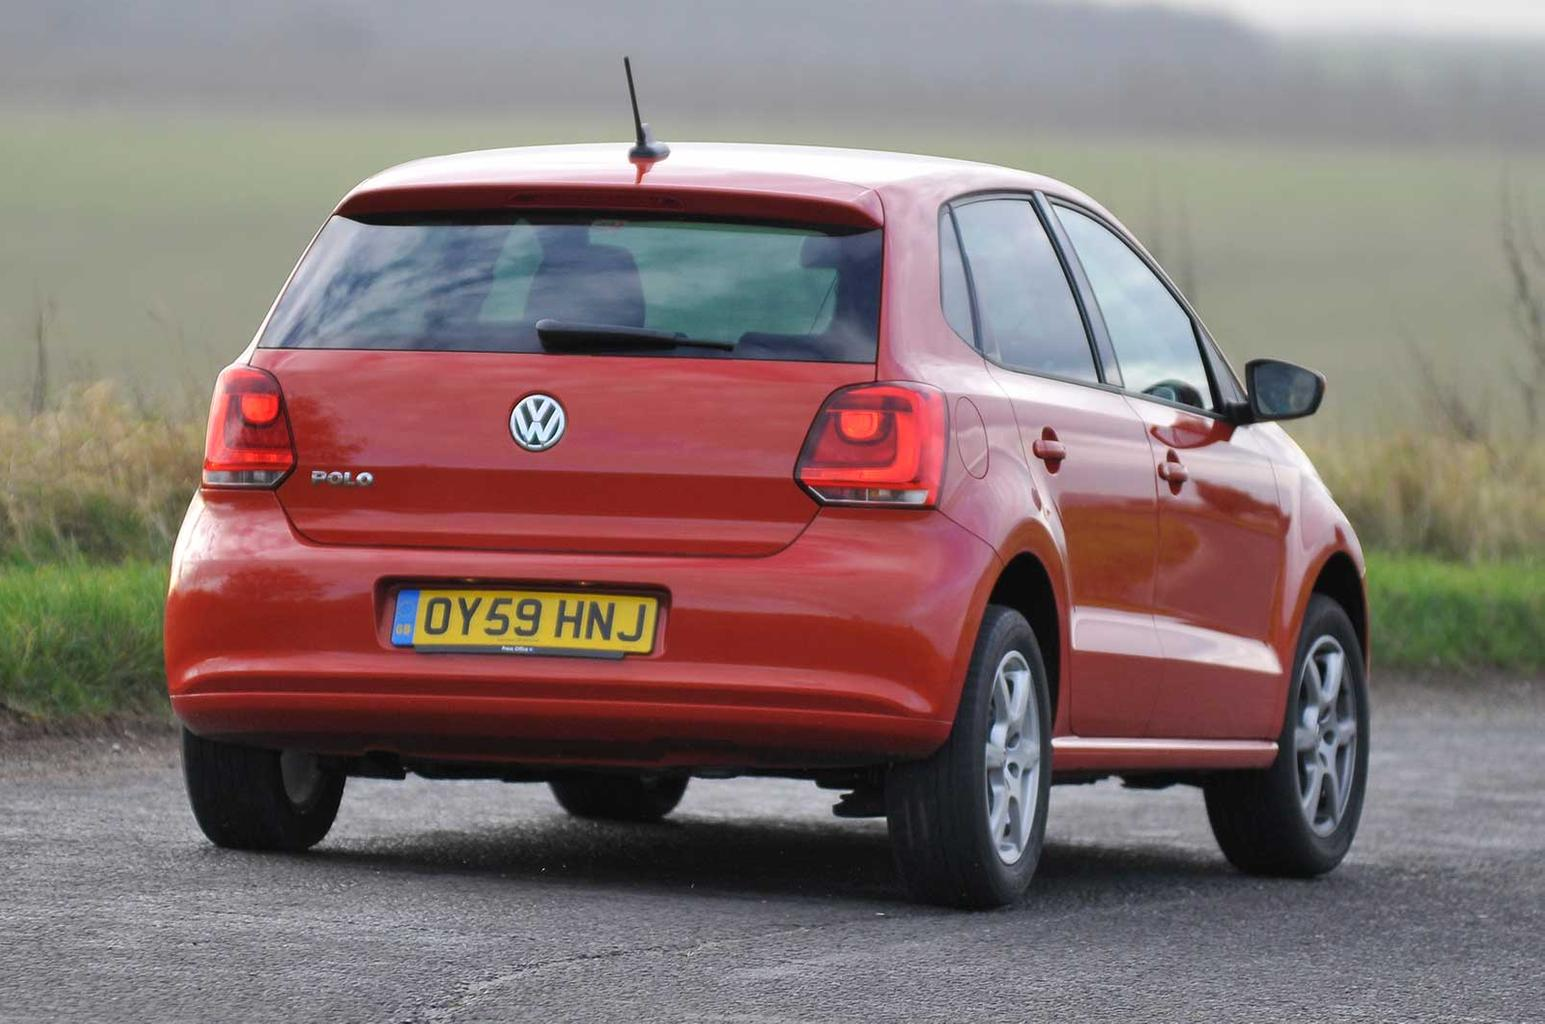 Used car of the week: Volkswagen Polo